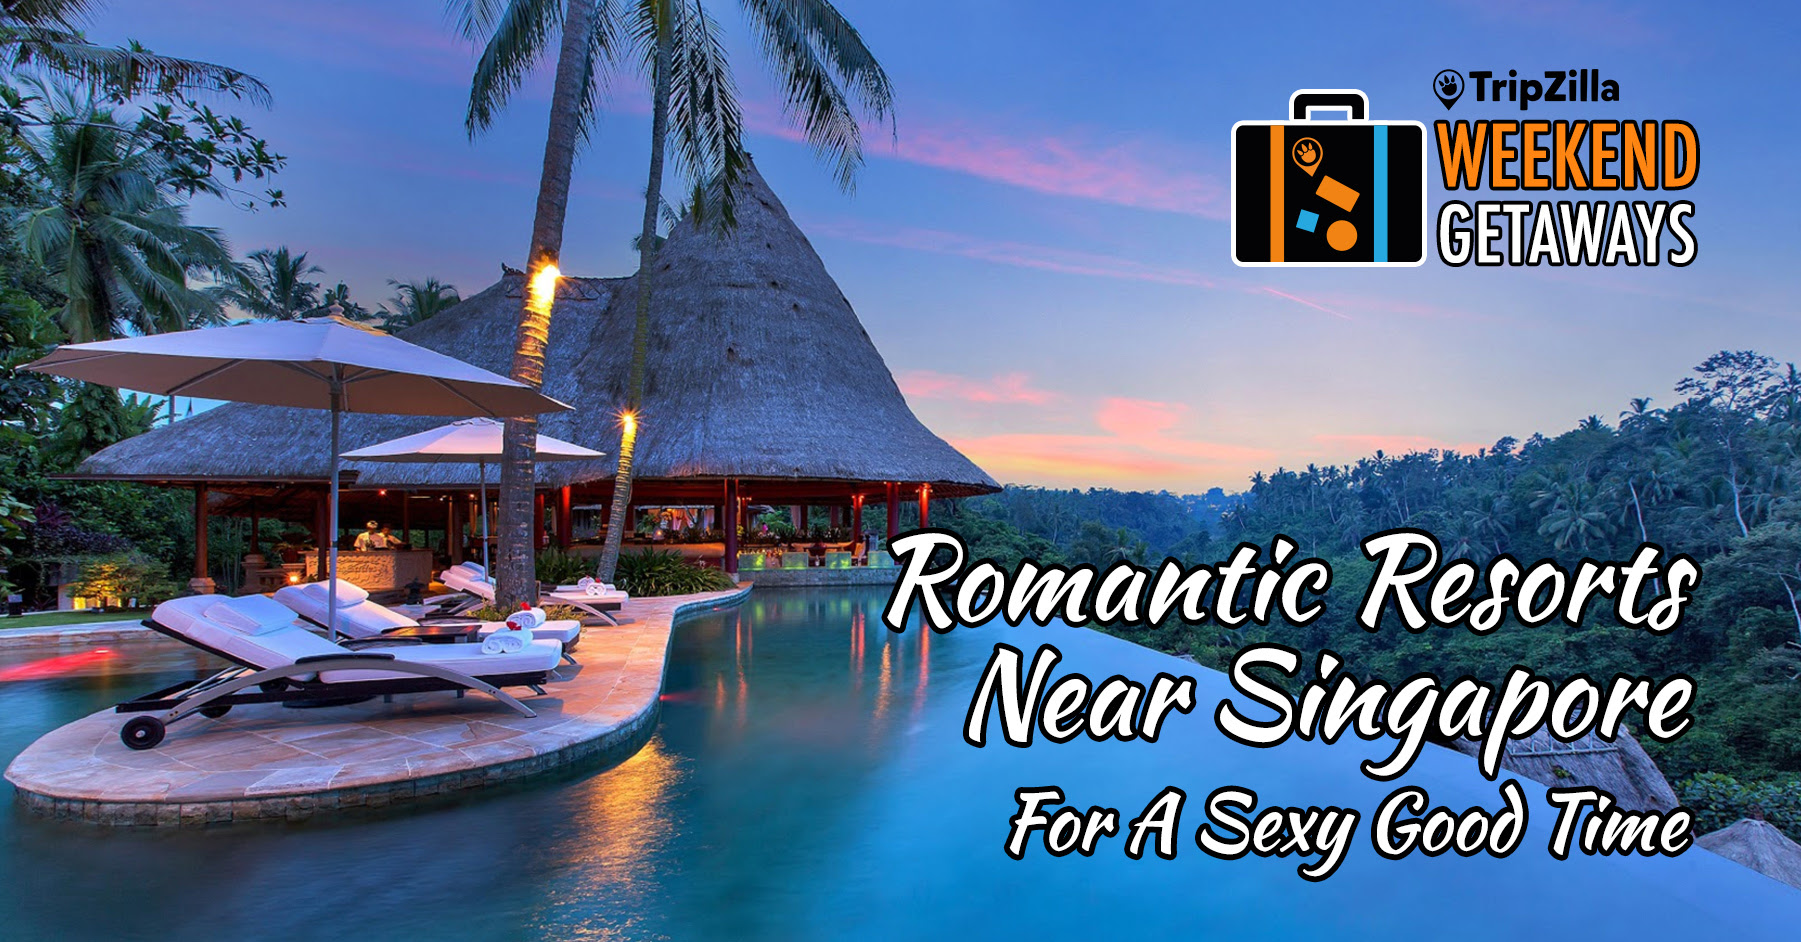 Romantic Resorts Near Singapore For A Sexy Good Time